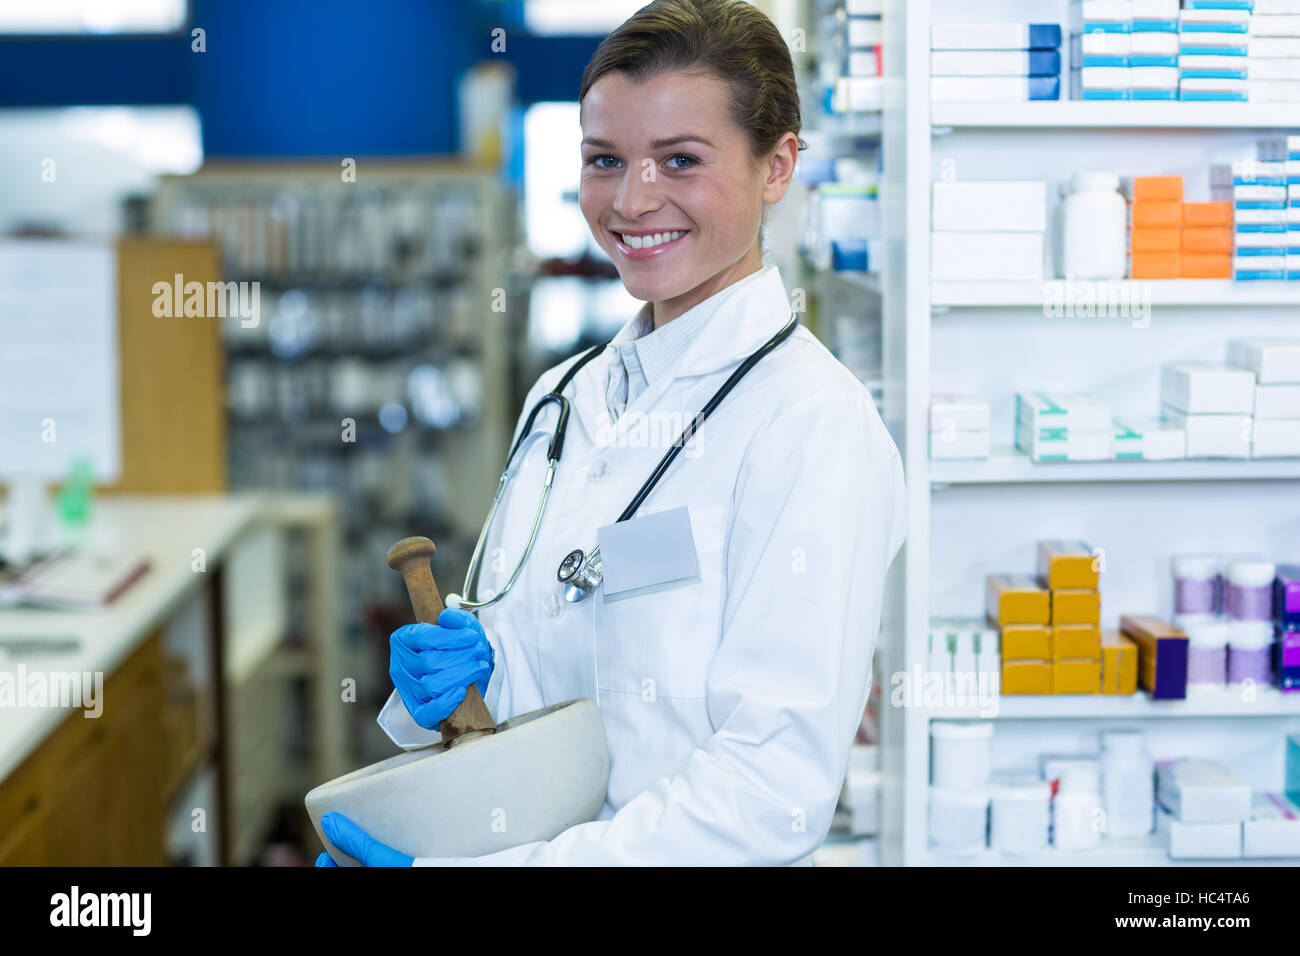 Pharmacist grinding medicine in mortal and pestle at pharmacy - Stock Image